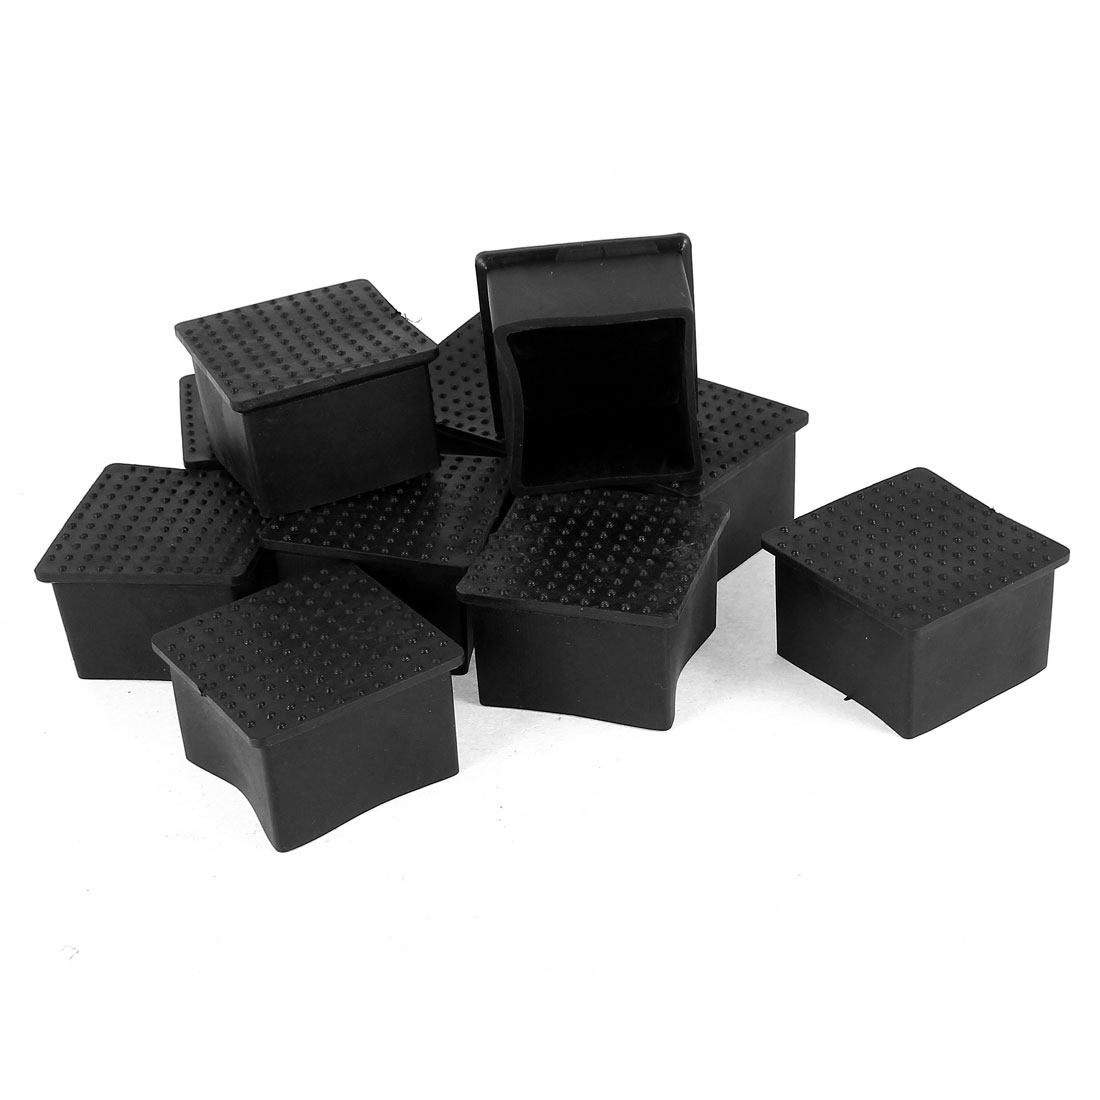 10 Pieces 45mmx45mm Chair Table Foot Protective Cover Pad Home Furniture Leg Cap Diameter(China (Mainland))